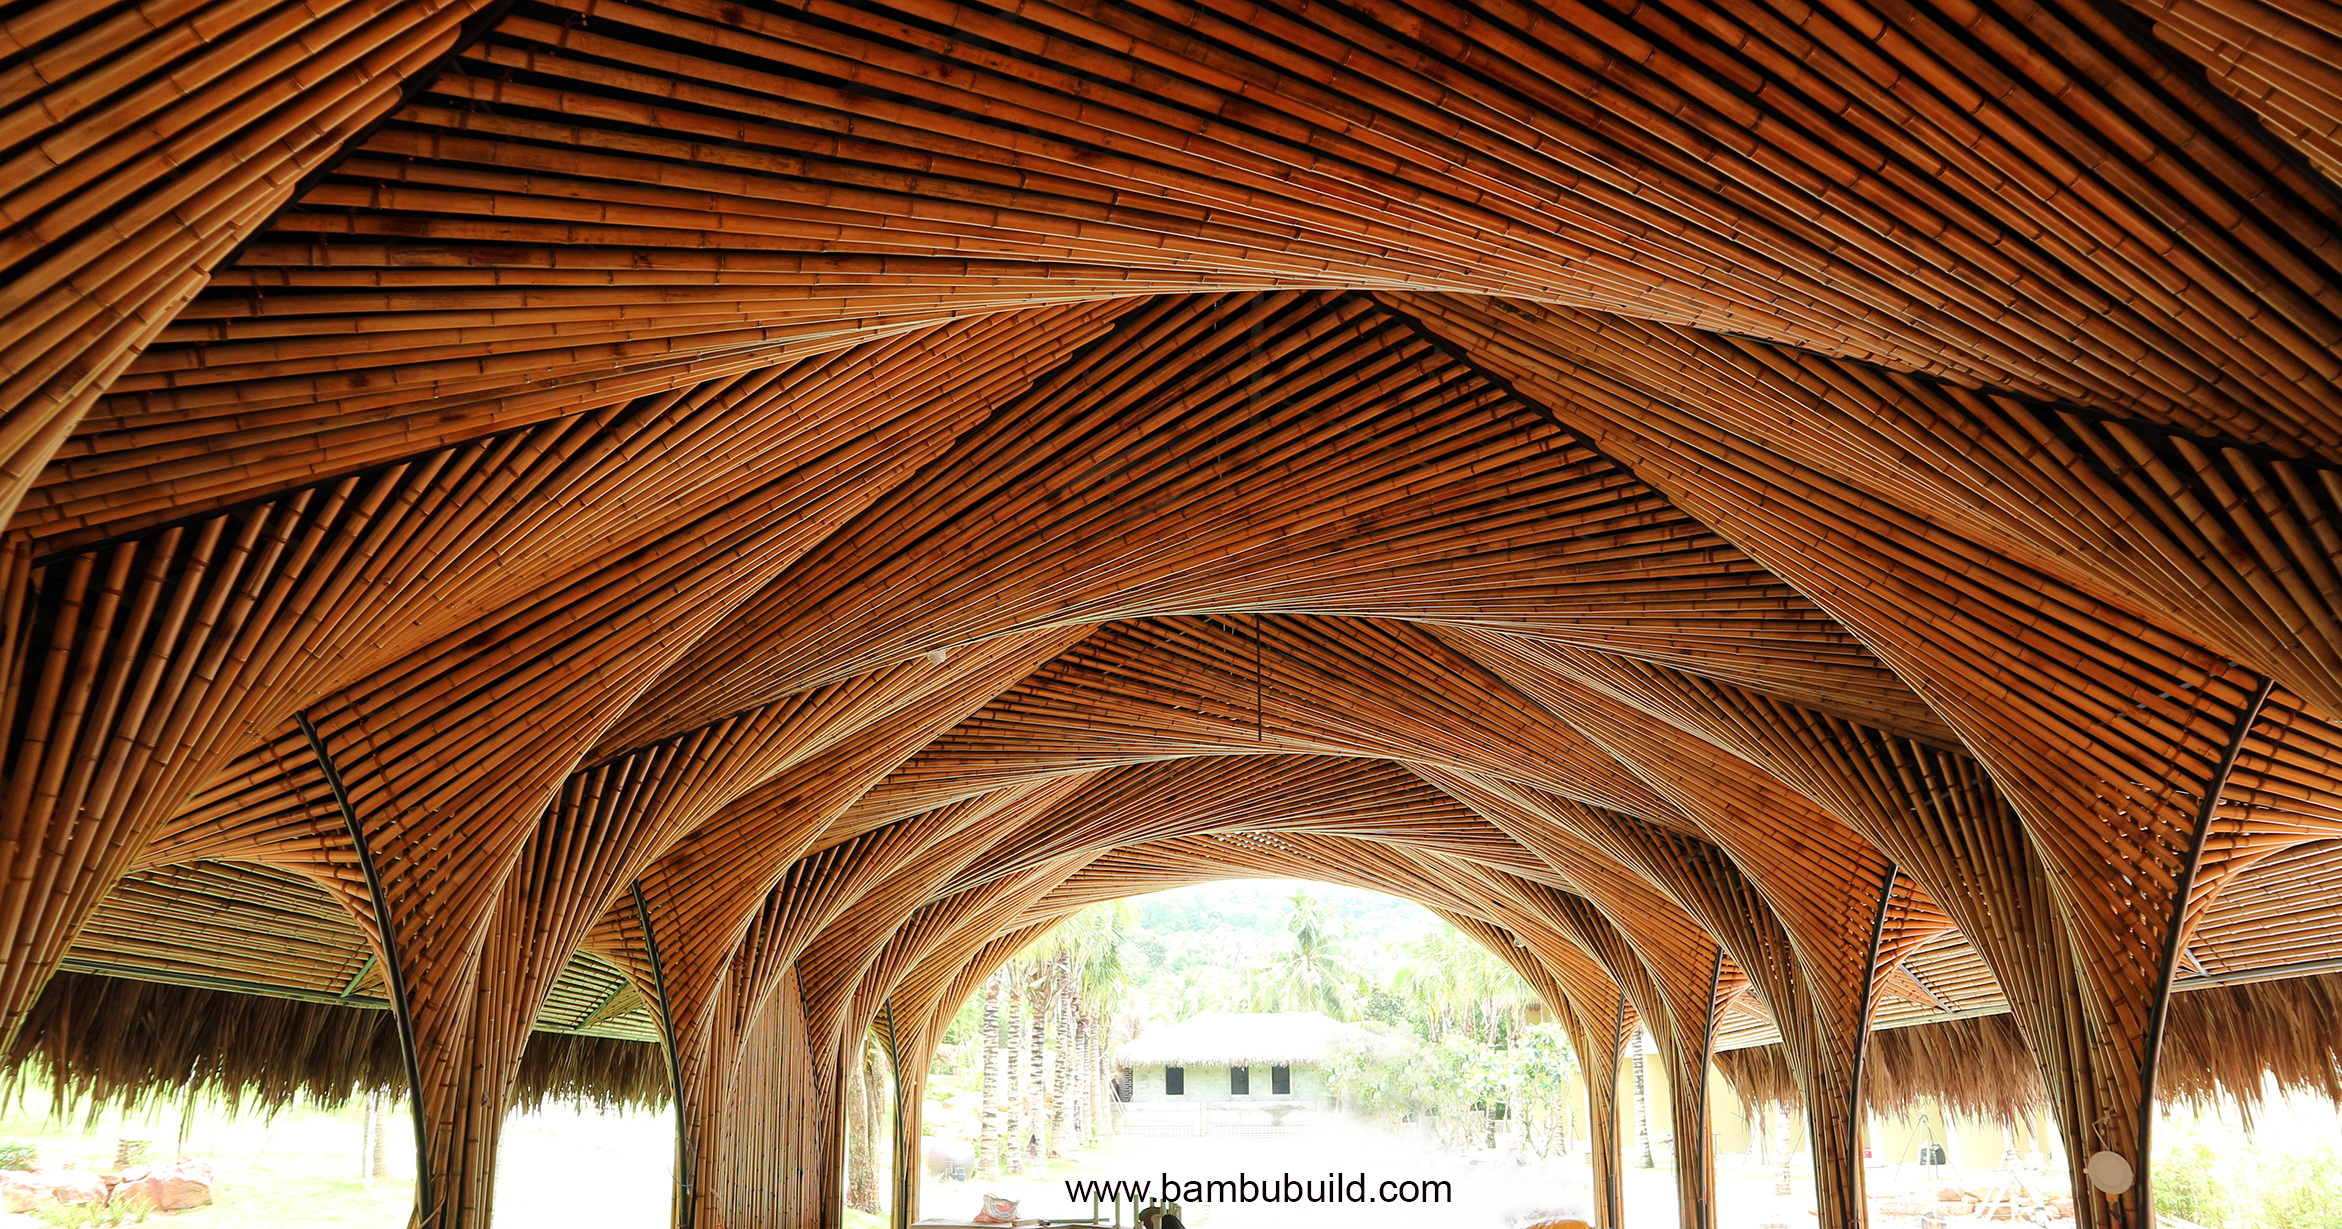 Bamboo architecture in Phu Quoc